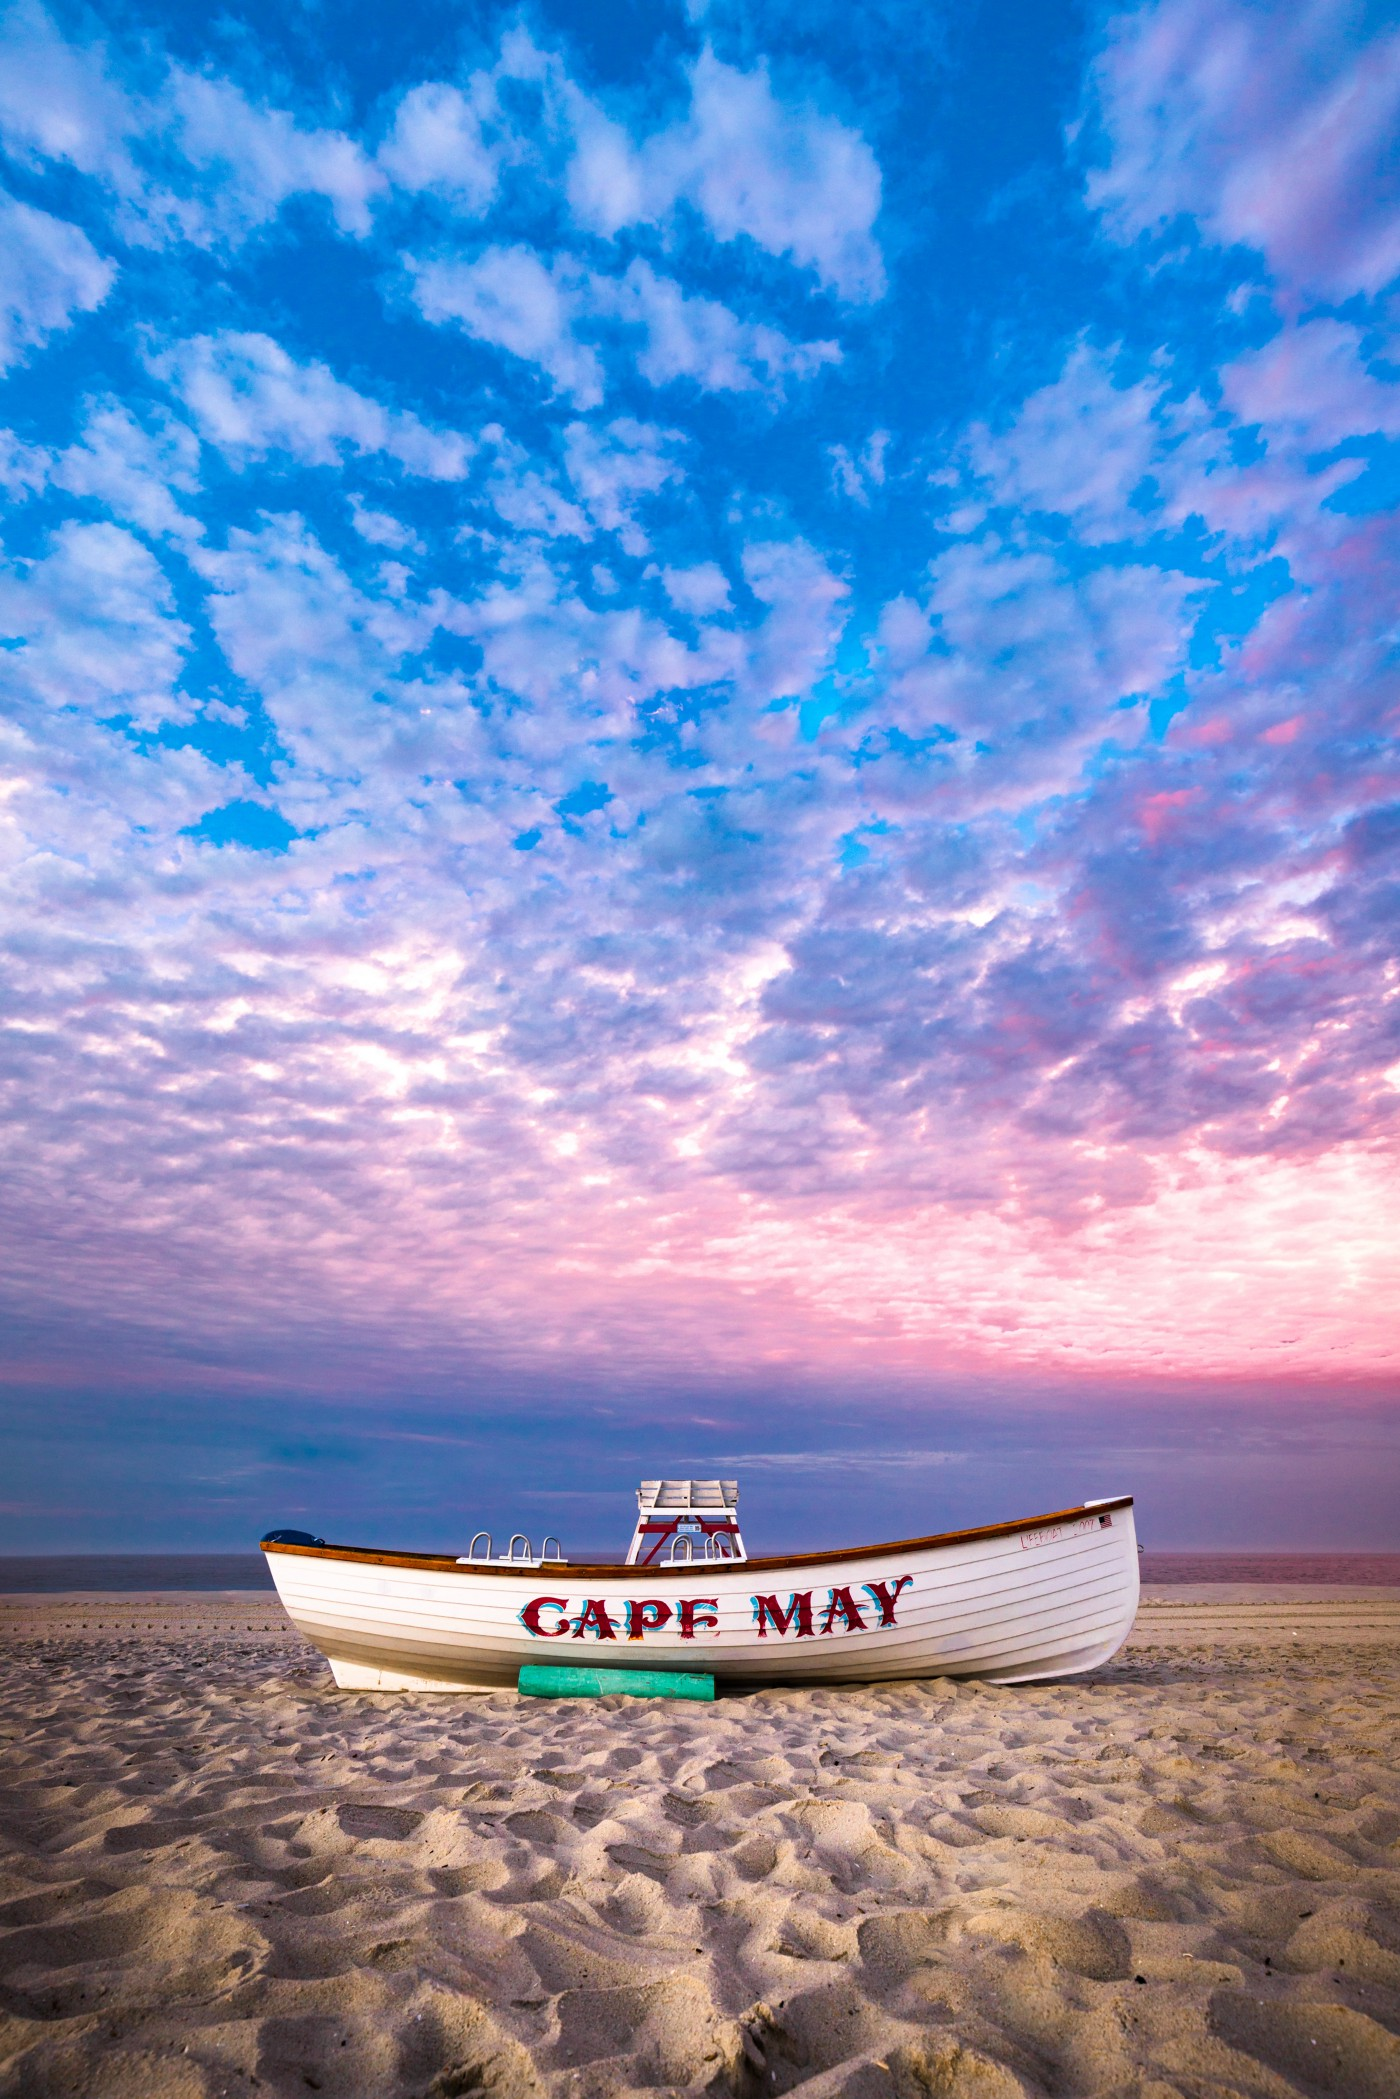 Photo of boat with cape may spelled on boat at New Jersey Beach. Photo on Dr. James Goydos 2021 article about melanoma in New Jersey.